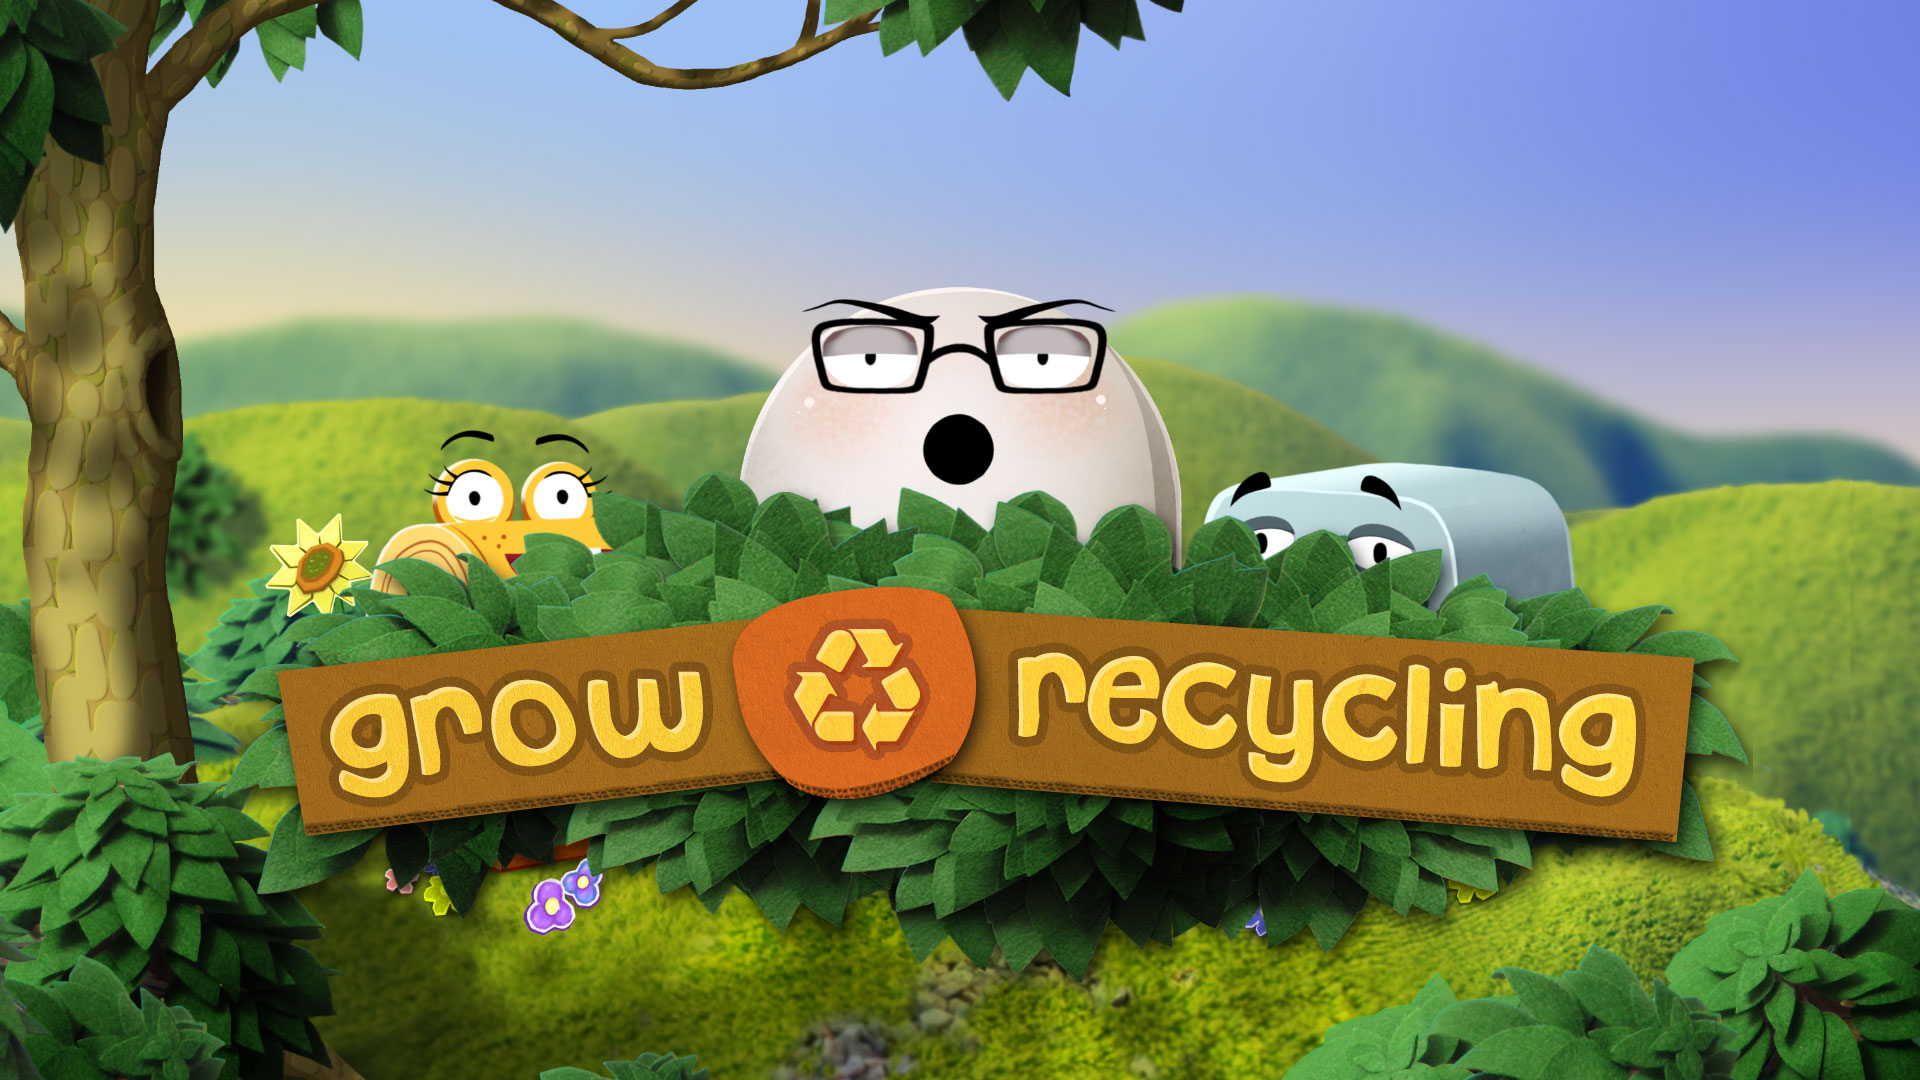 Grow Recycling Gro Play Gro Play Playing To Change